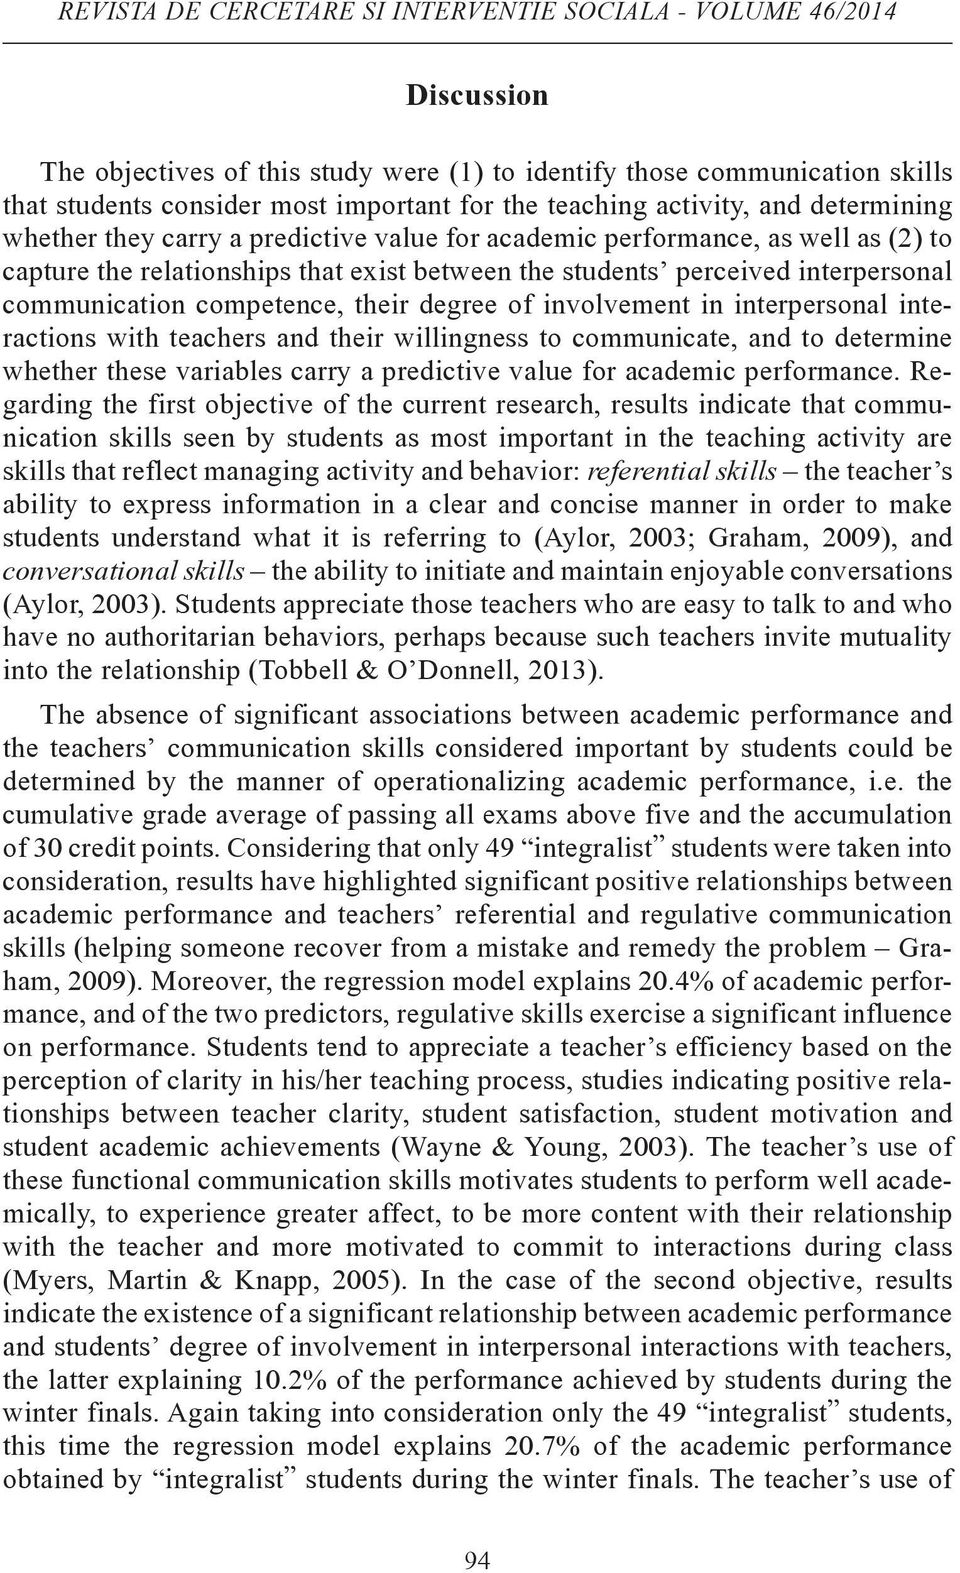 communication competence, their degree of involvement in interpersonal interactions with teachers and their willingness to communicate, and to determine whether these variables carry a predictive